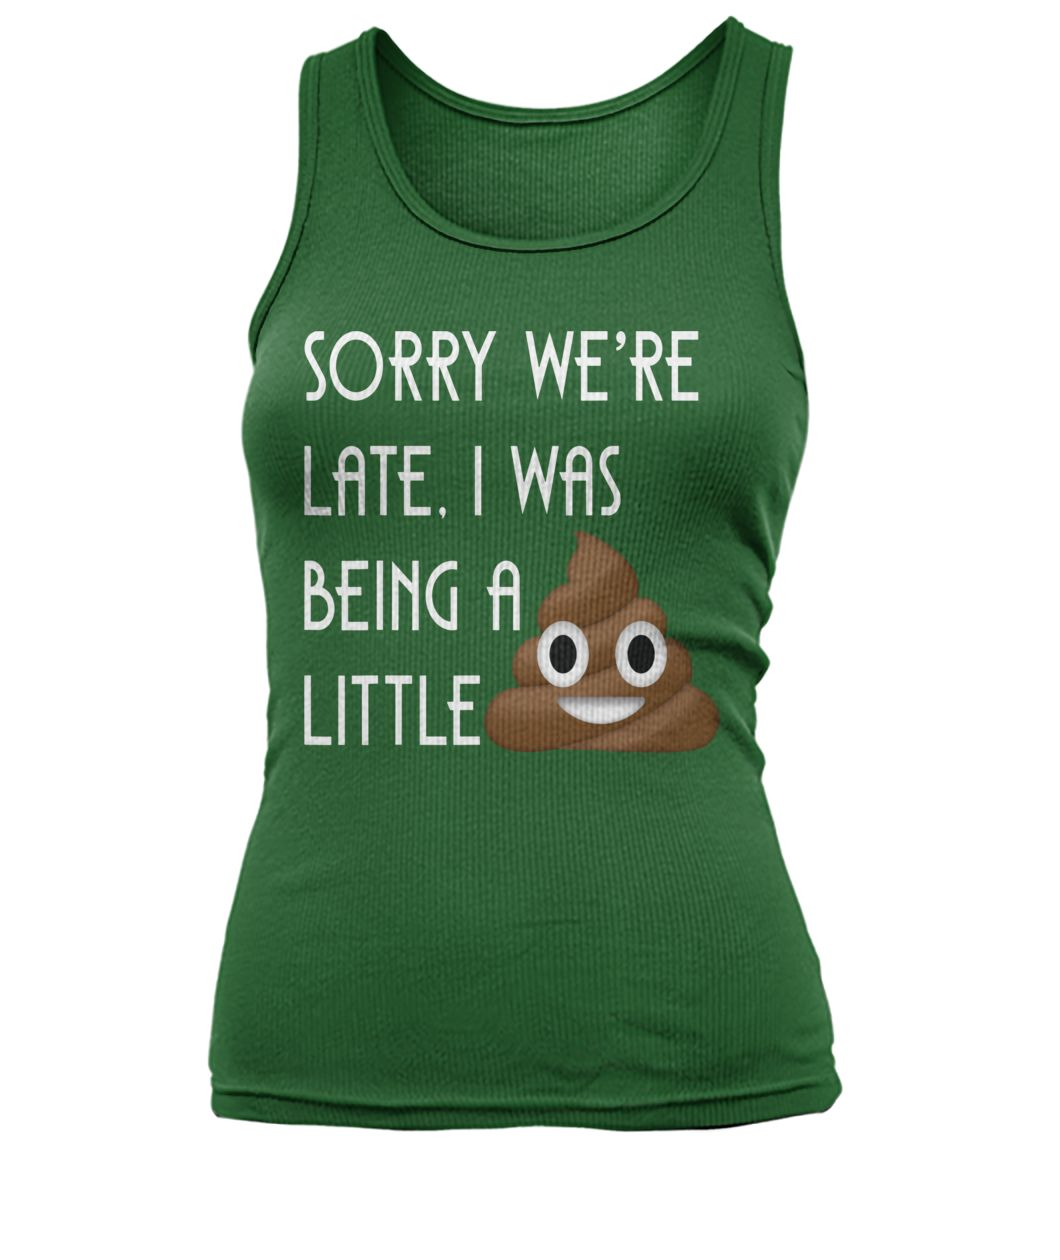 Sorry we're late I was being a little poop women's tank top